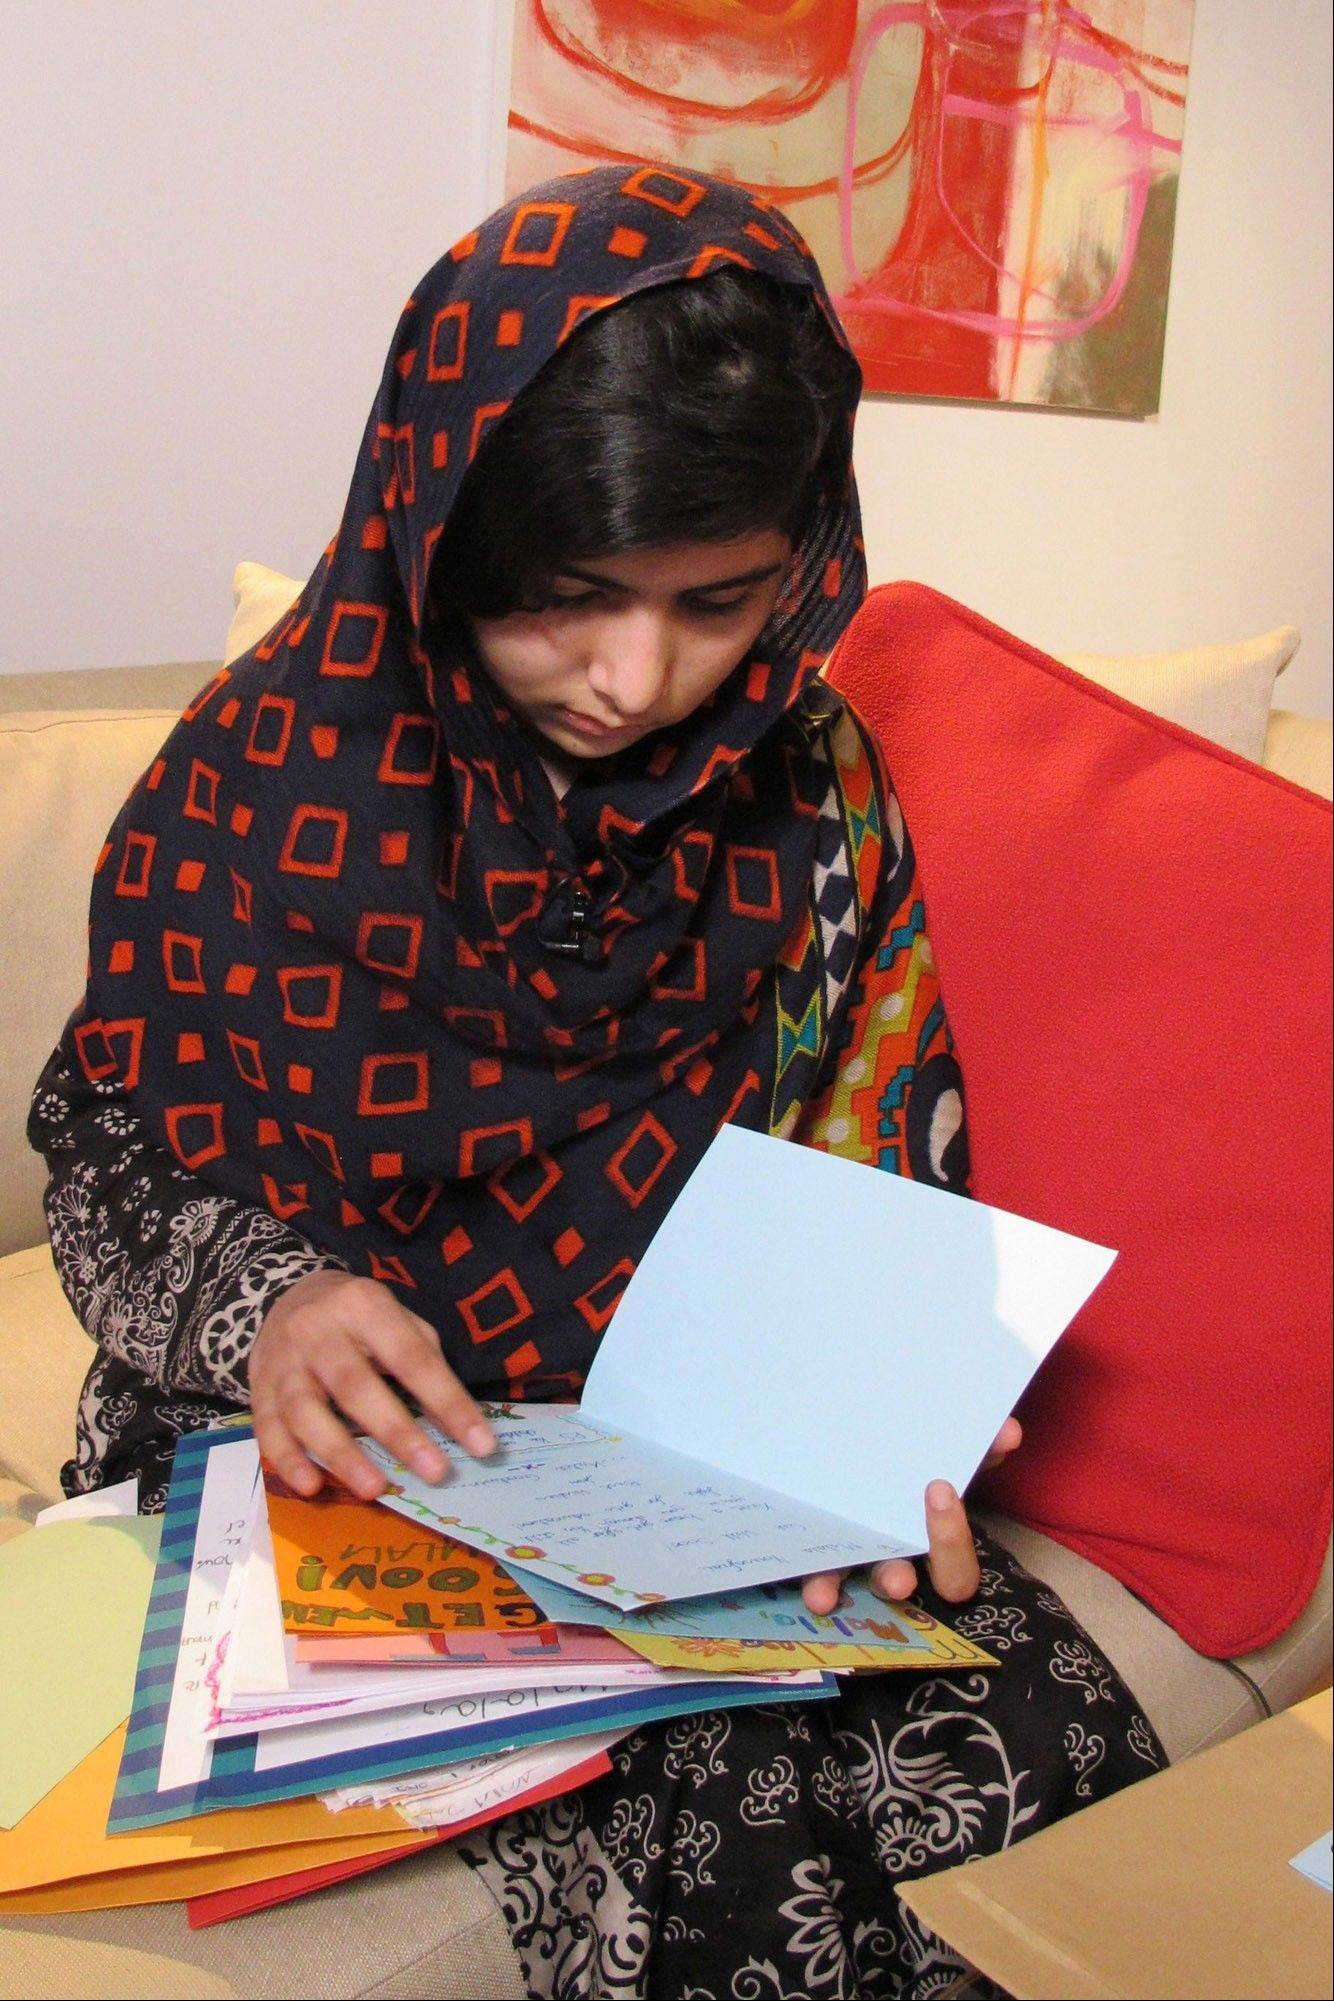 In this Jan. 22 released Monday, Malala Yousefzai reads get well cards. The Pakistani girl shot by the Taliban Oct. 9 has made her first video statement since she was nearly killed, released Monday, saying she is recovering.